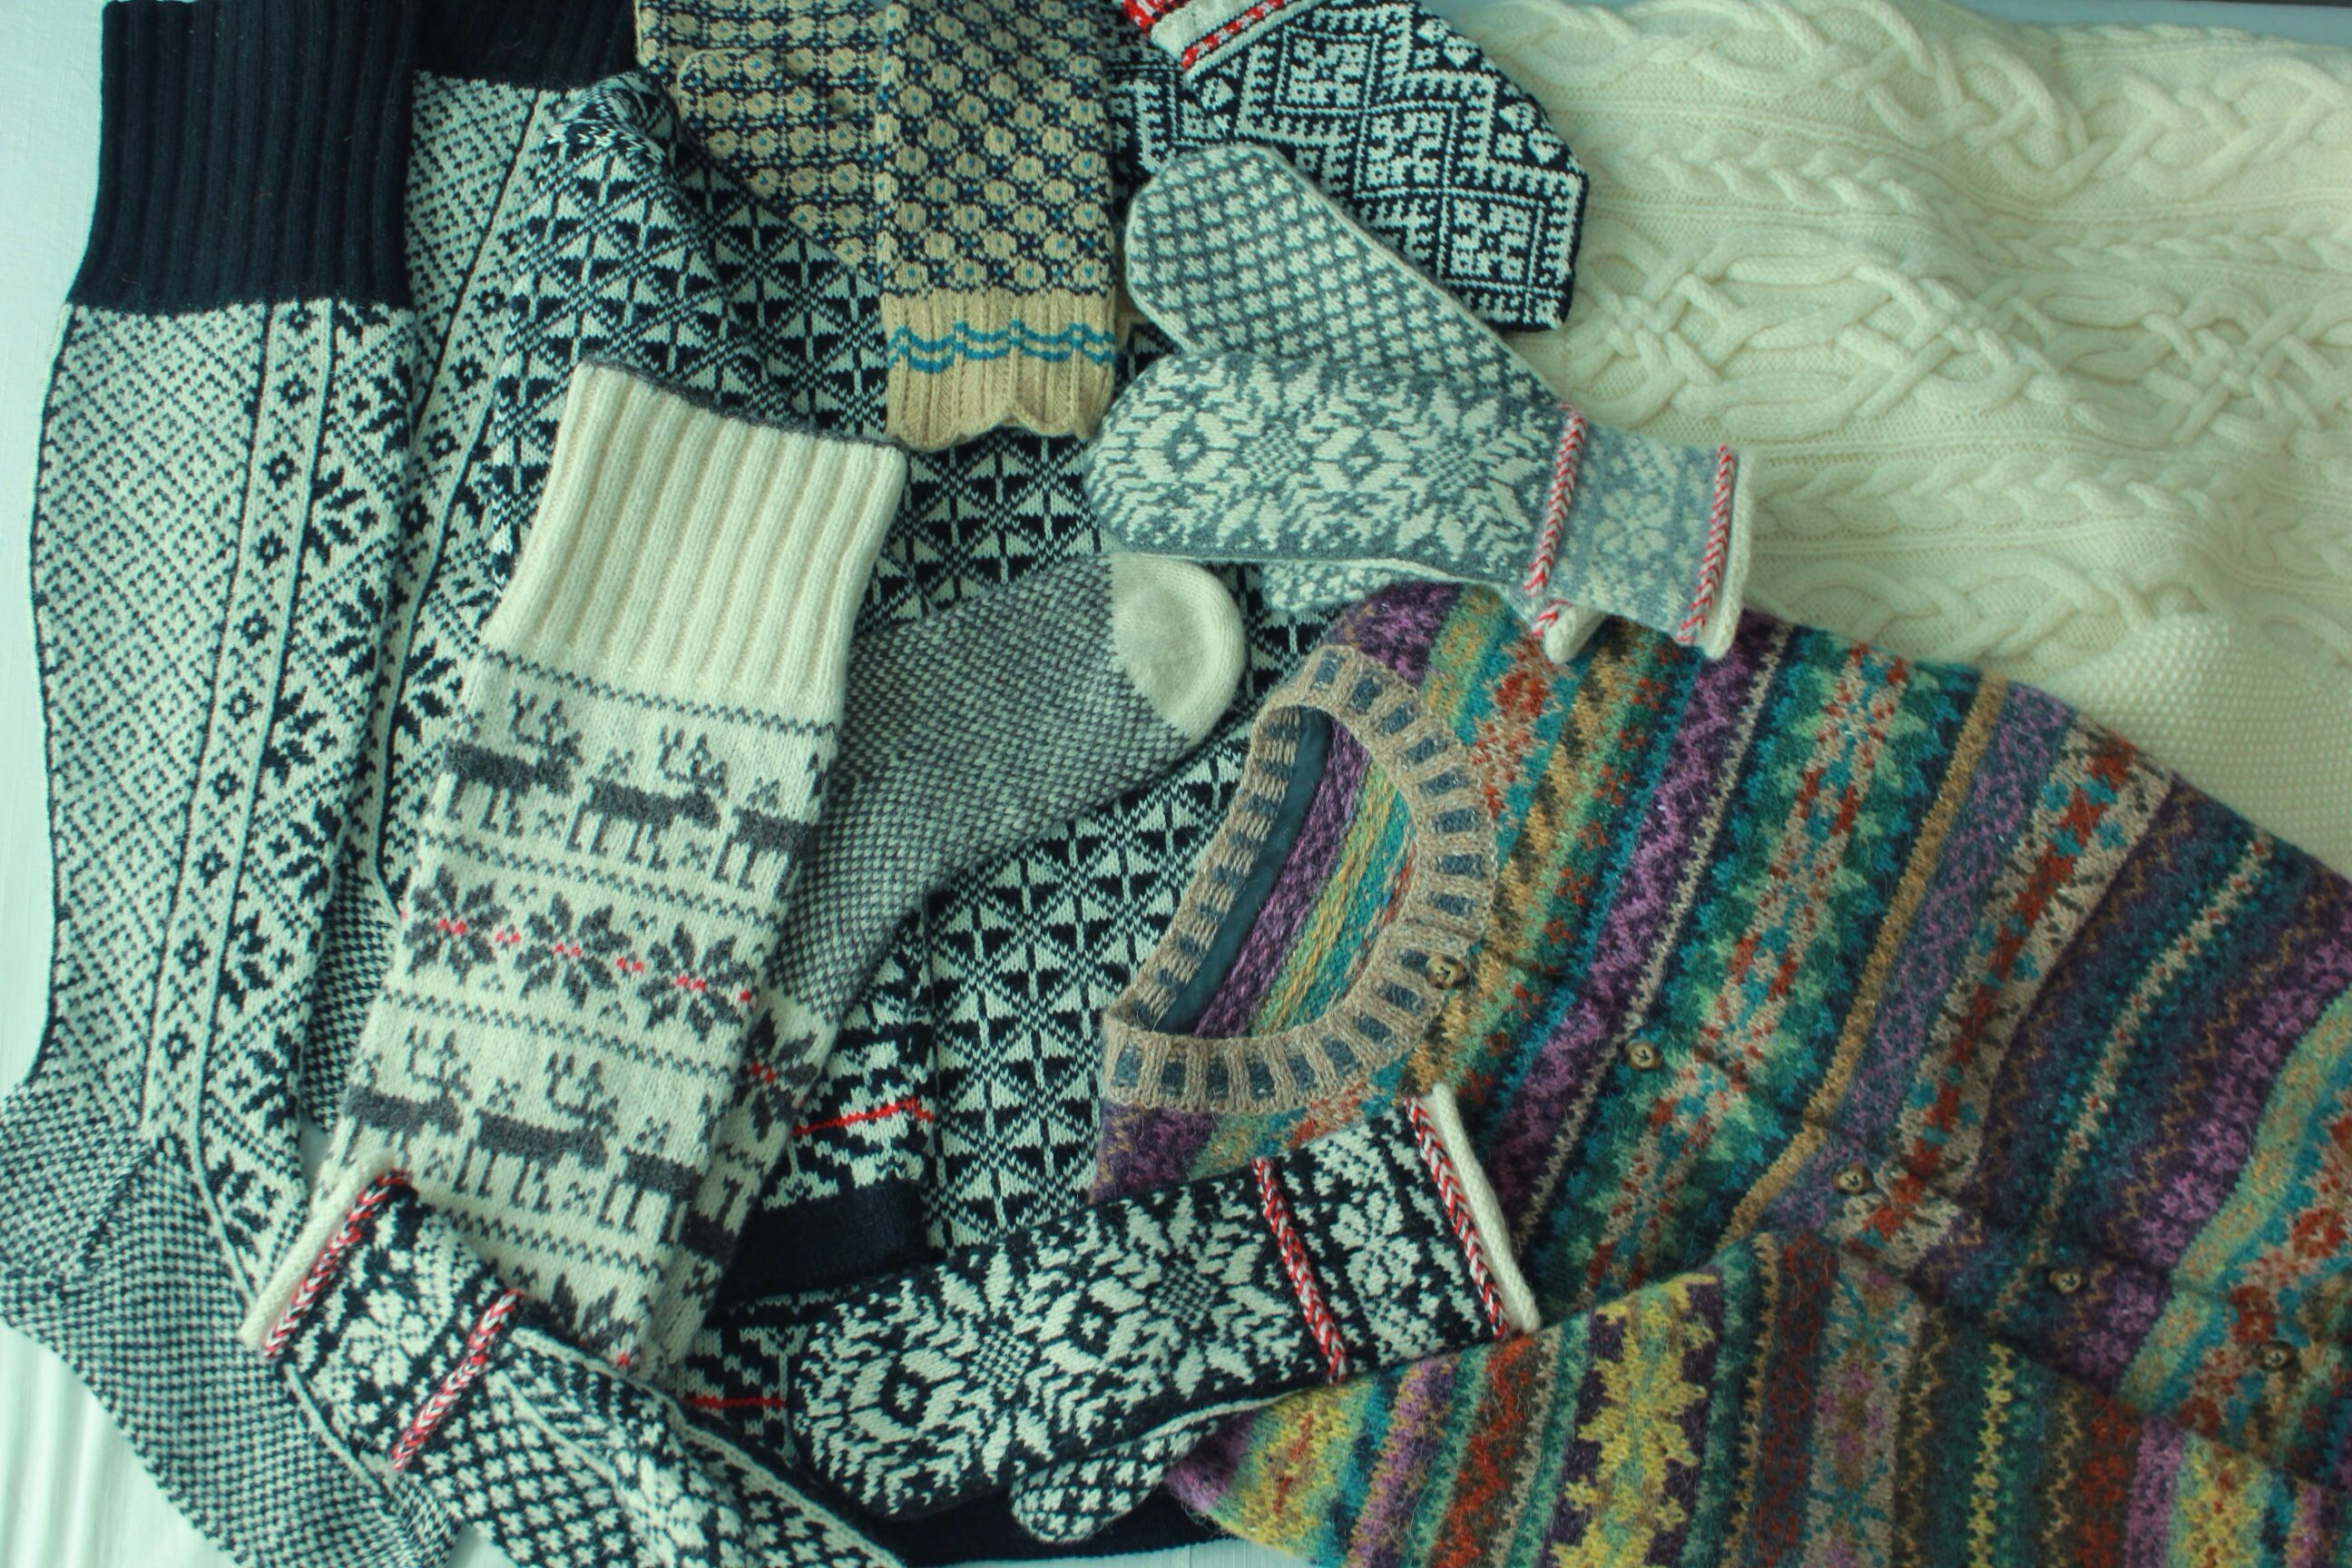 Some of my work - stockings, ski sweater, Aran sweater, mittens and Orkney cardigan. I love knitting fair isle :)